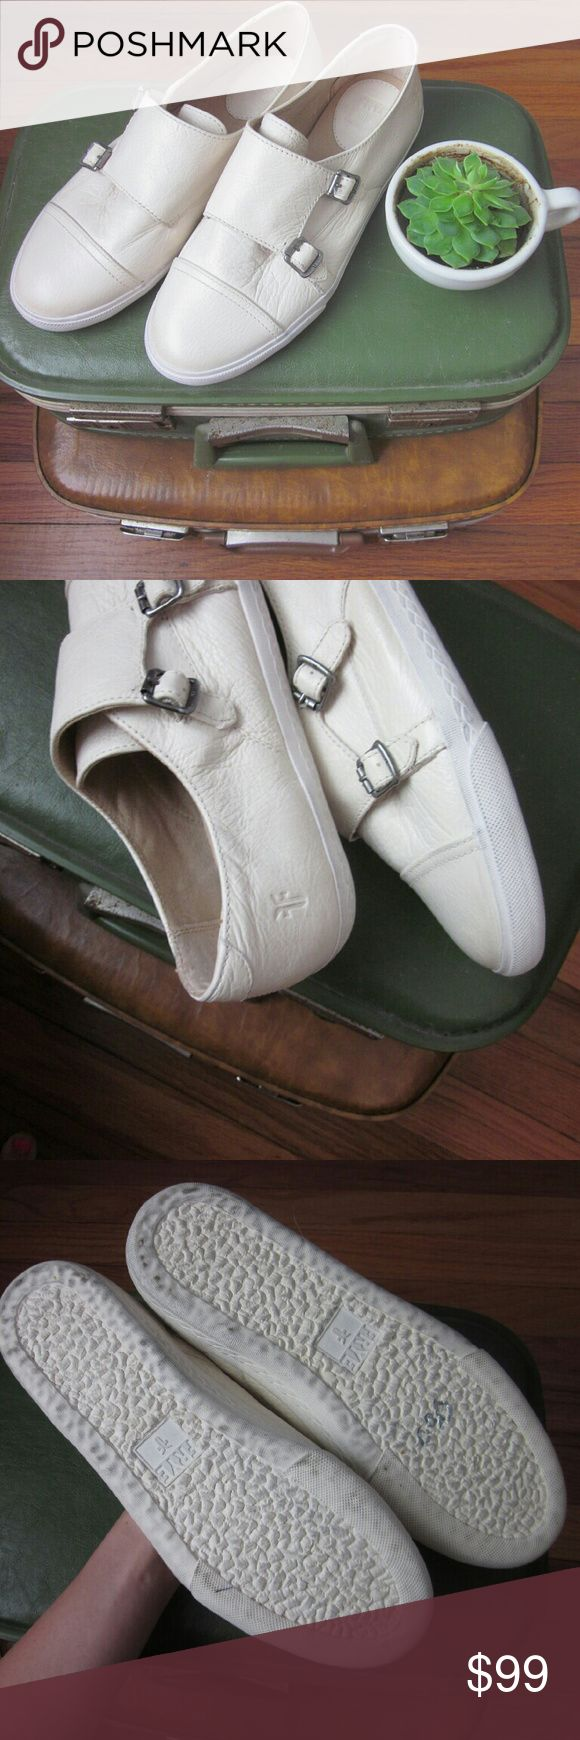 Frye Mindy Monk Strap Sneaker NWOB New without box! Uppers flawless. Perfect super soft antiques leather. Cushioned footbeds. Sold out online - website claims true to size. Round toe cap. Double monk strap buckle closure. Rubber soles look to be worn but are made that way - see stock photo. Color is Off white per nordstrom website. Almost cream. Bundle for best deals! Hundreds of items available for discounted bundles! You can get lots of items for a low price and one shipping fee! Follow on…